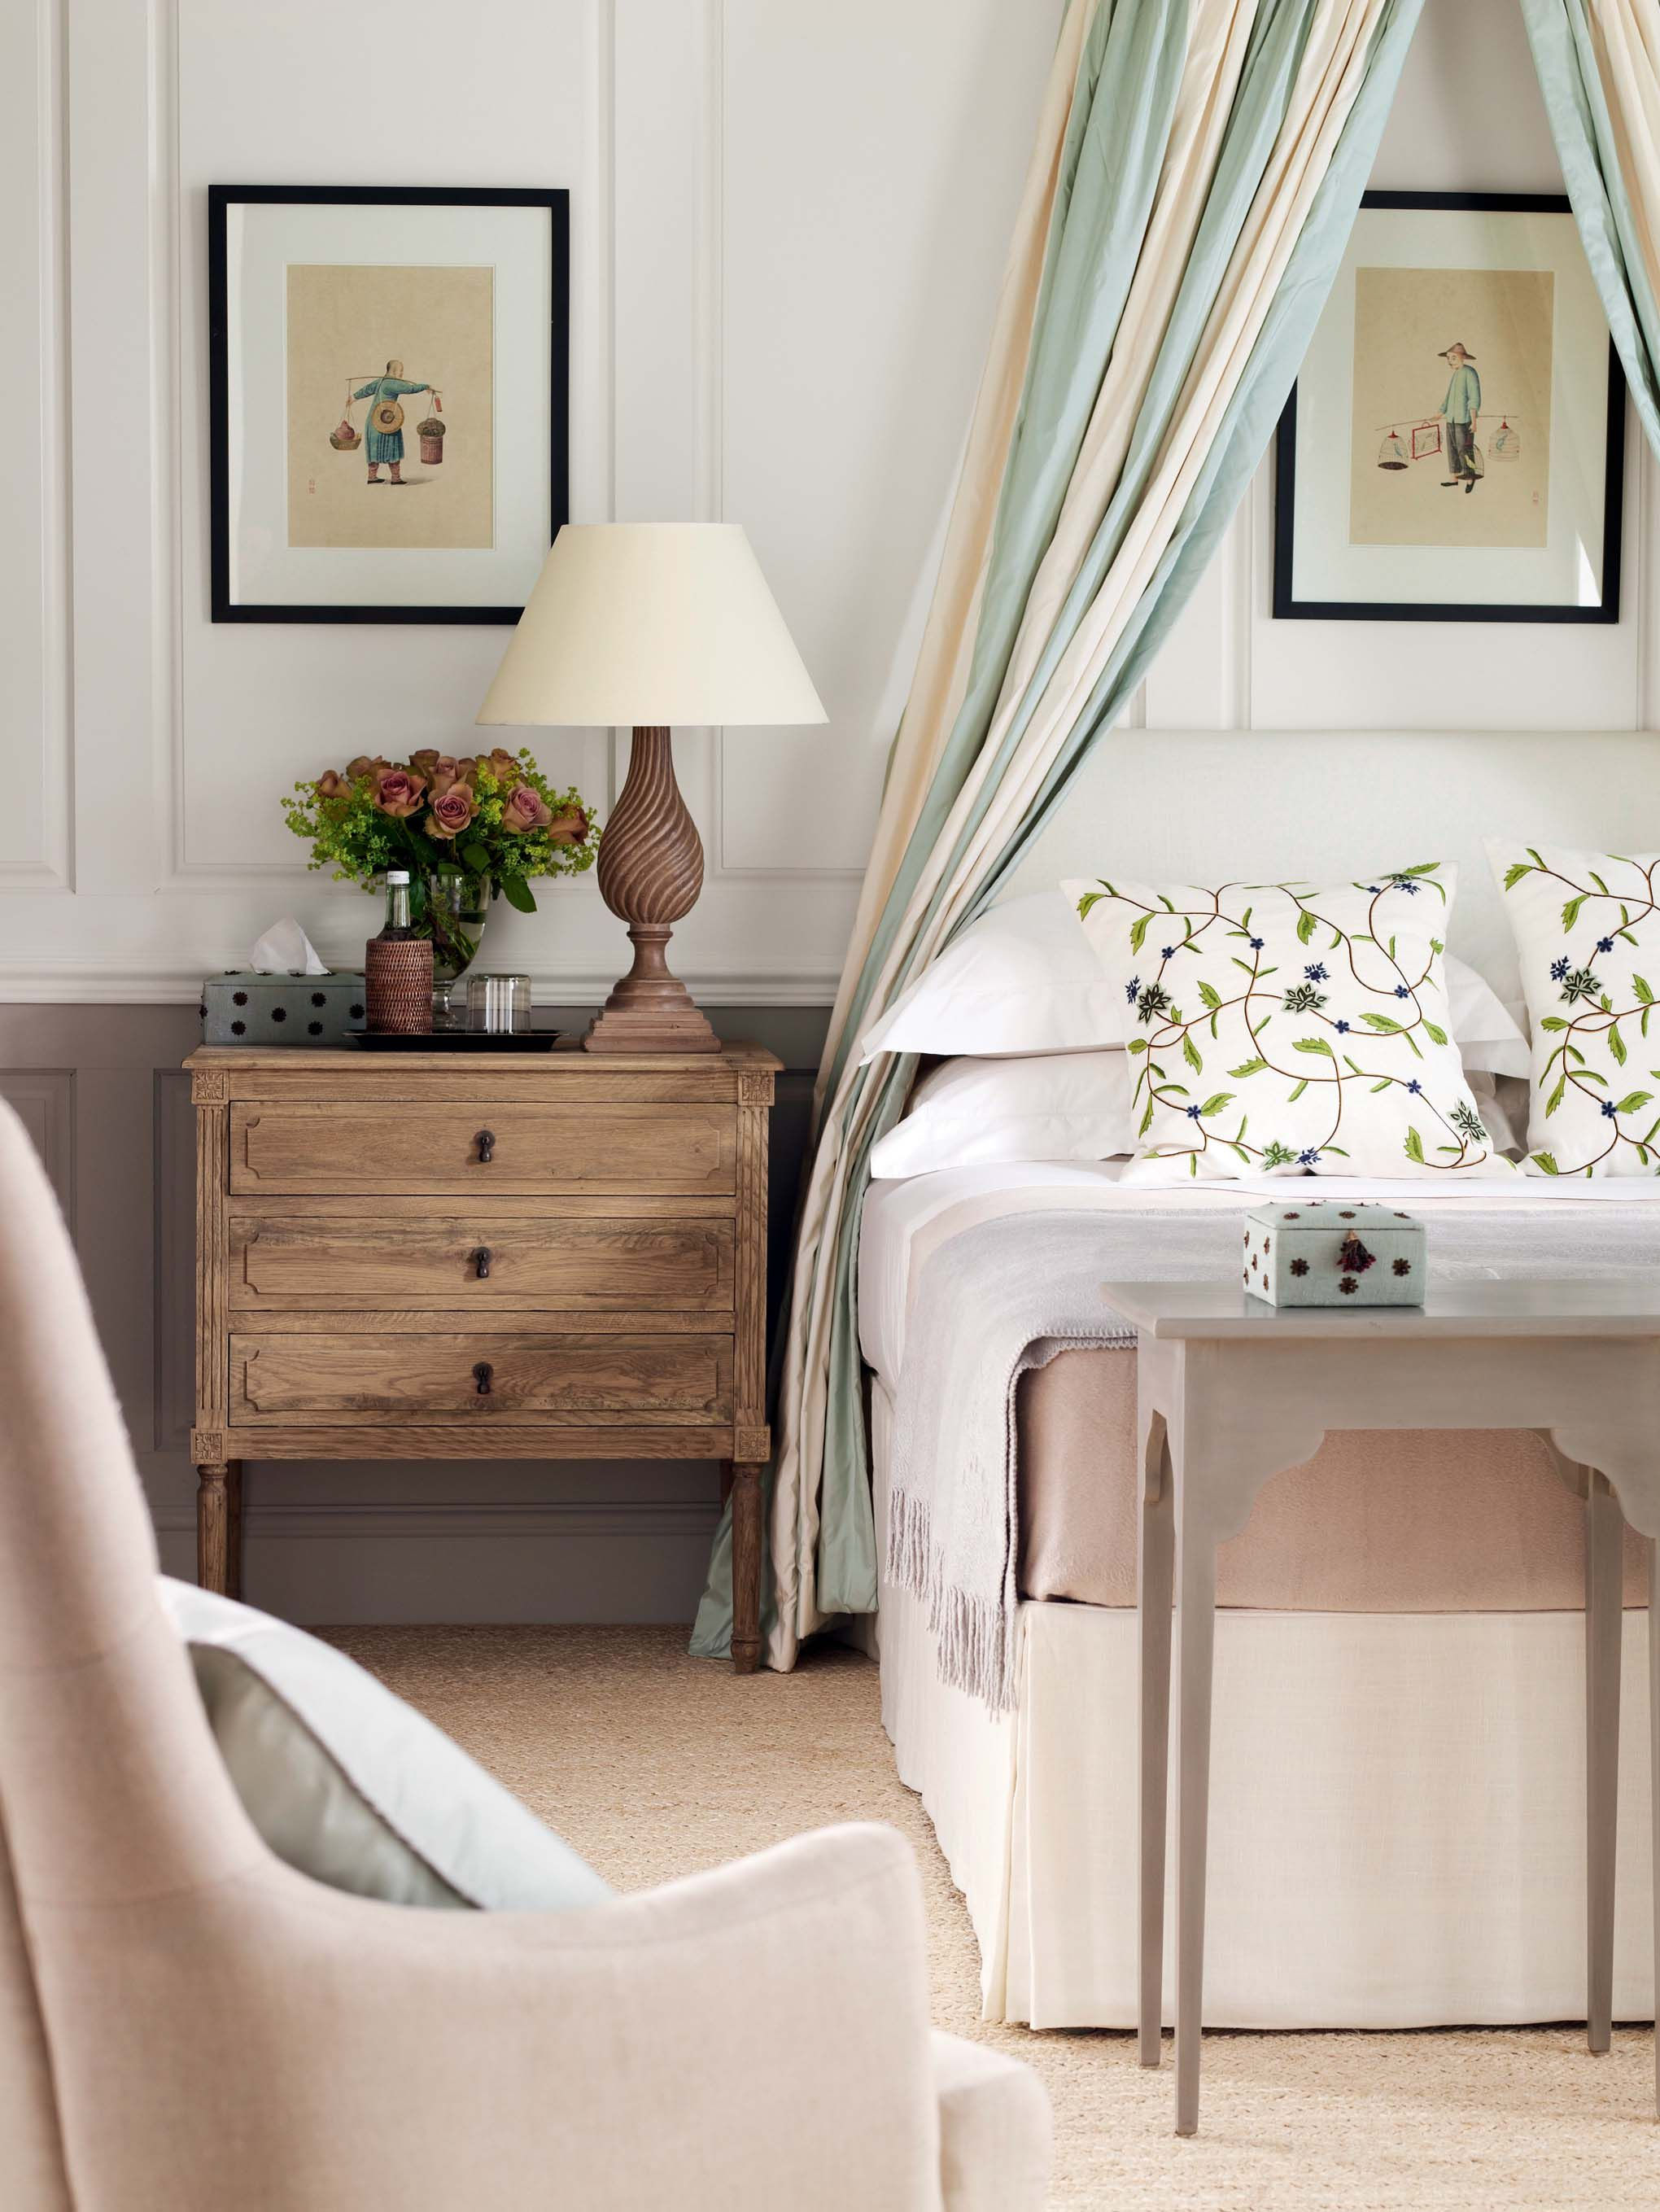 Flowers and leaves add a fresh touch to a cream room ...